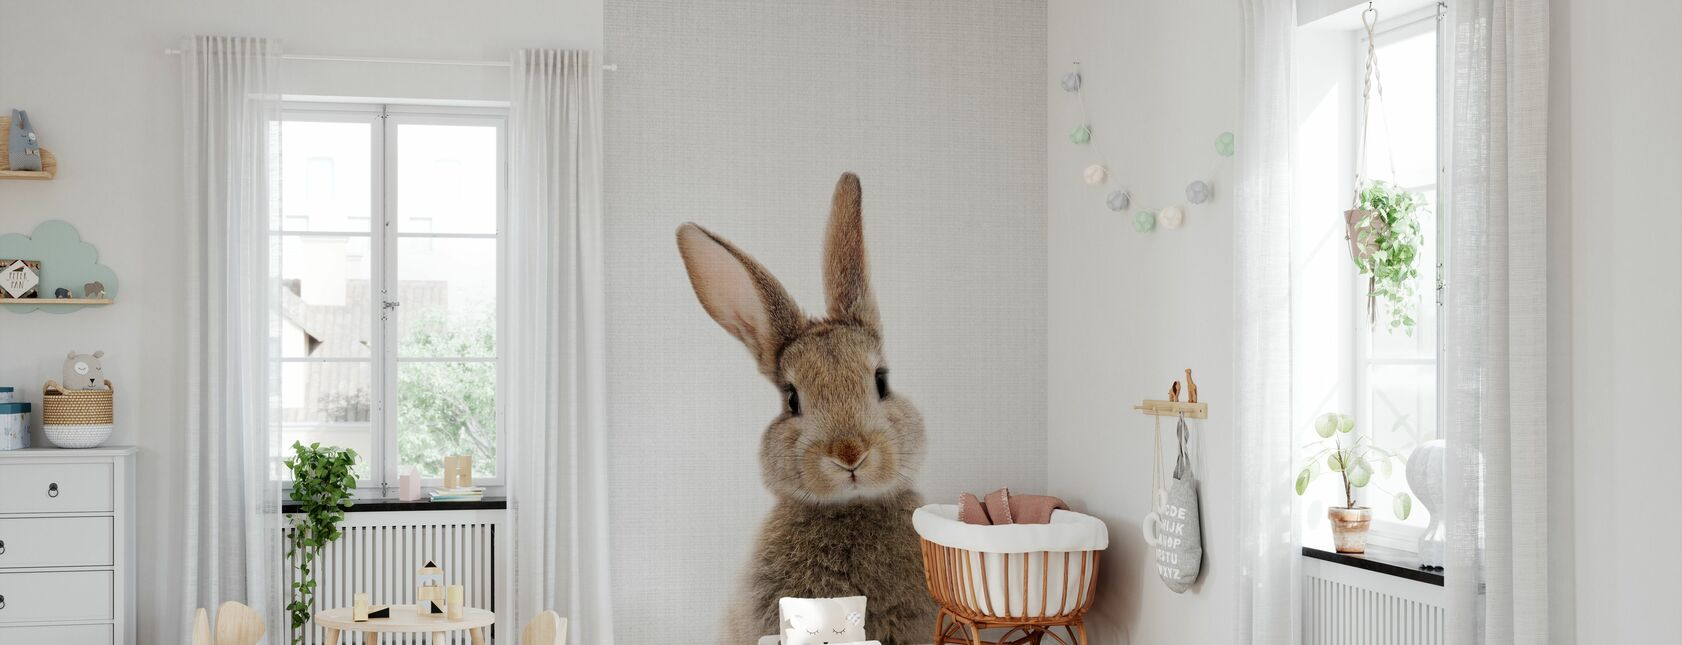 Bunny Rabbit - Wallpaper - Nursery